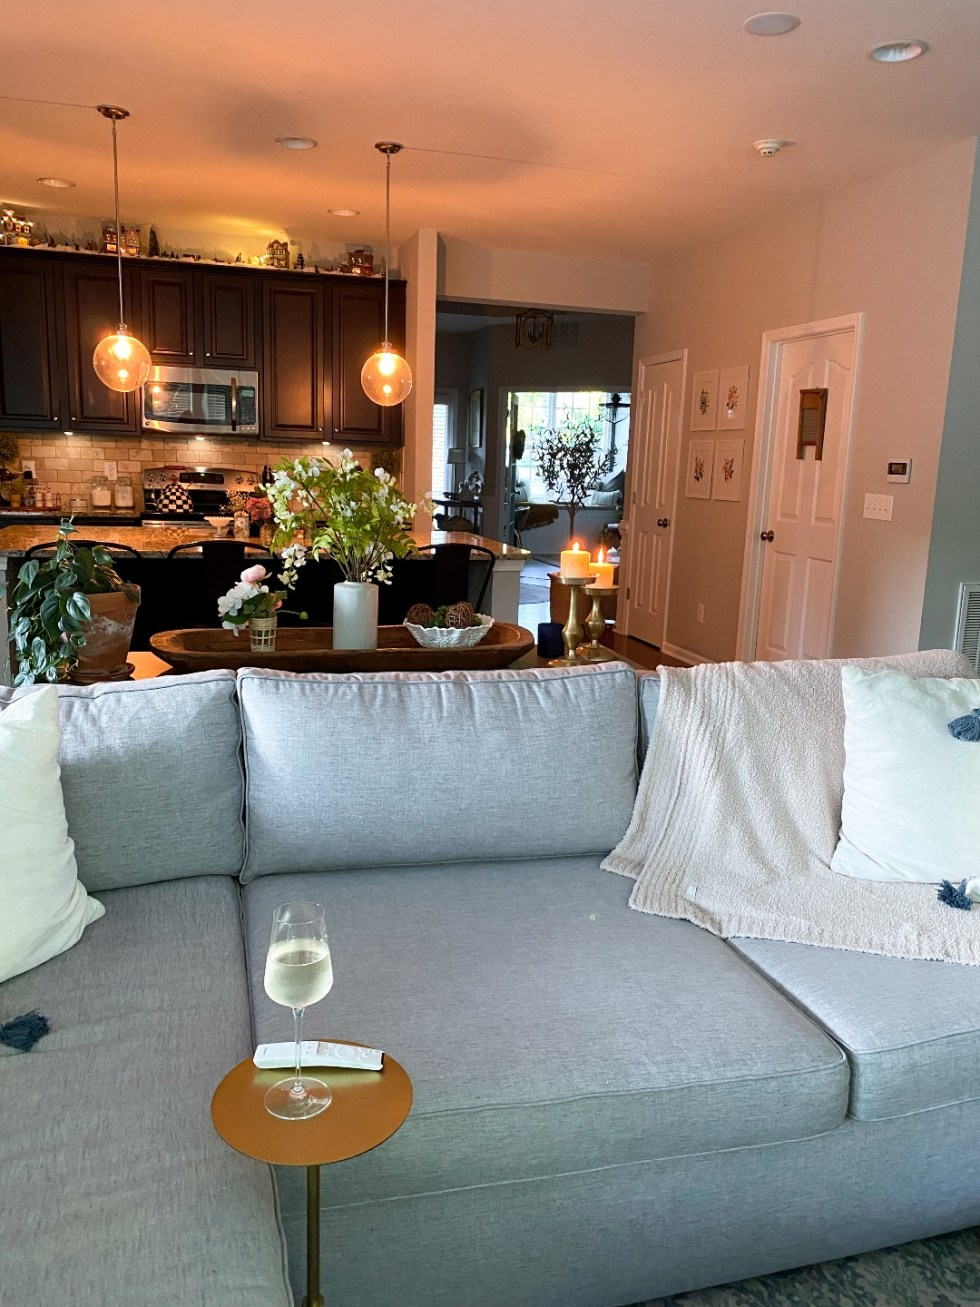 Room Reveal: Blue and Gray Living Room Ideas - I'm Fixin' To - @imfixintoblog | Blue and Grey Living Room Ideas by popular NC life and style blog, I'm Fixin' To: image of a living room decorated with a grey sectional couch white throw pillow, cream cable knit blanket, potted house plants, and blue and white area rug.